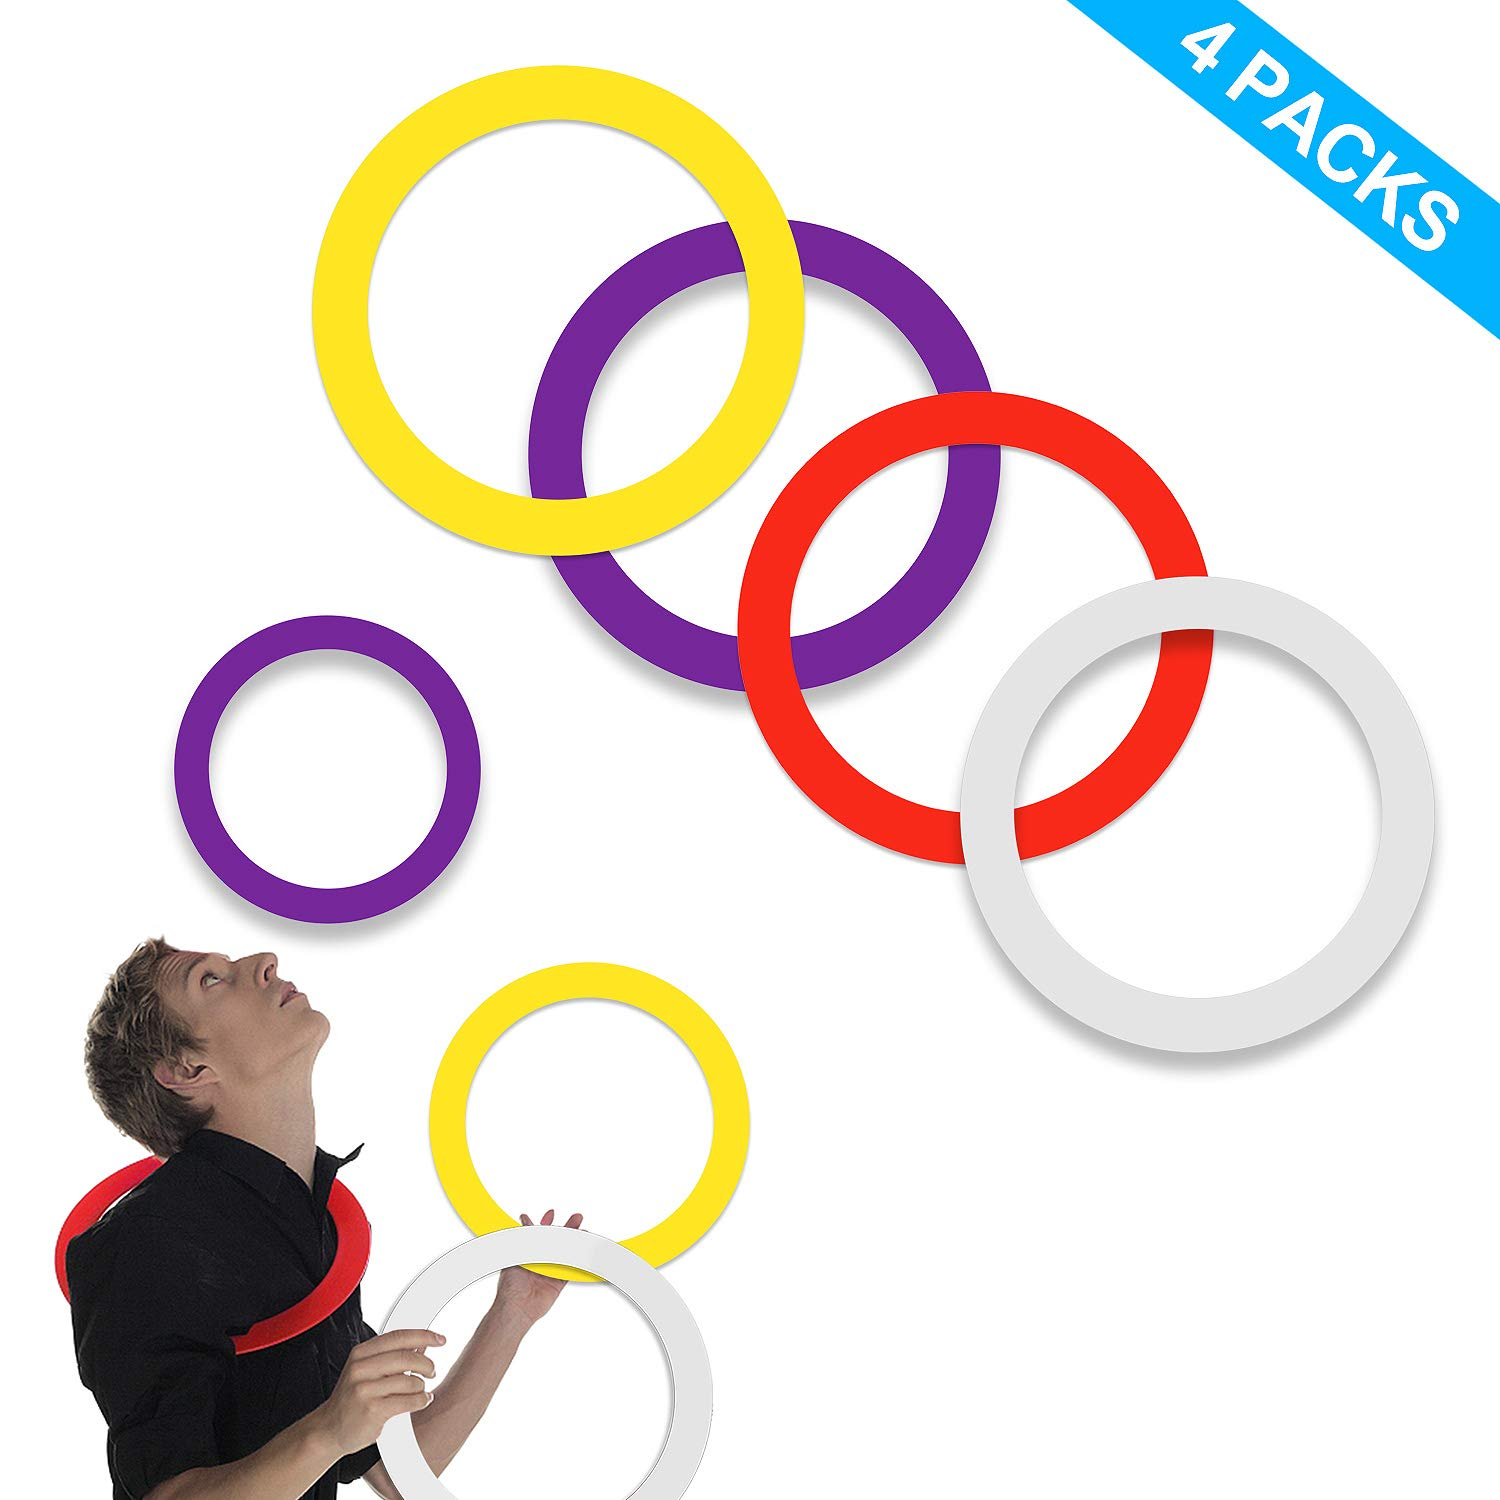 YuXing Juggling Rings (12.6'' 4.0 Ounce) Set of 4 for Beginners and Professionals, Red Yellow White Purple